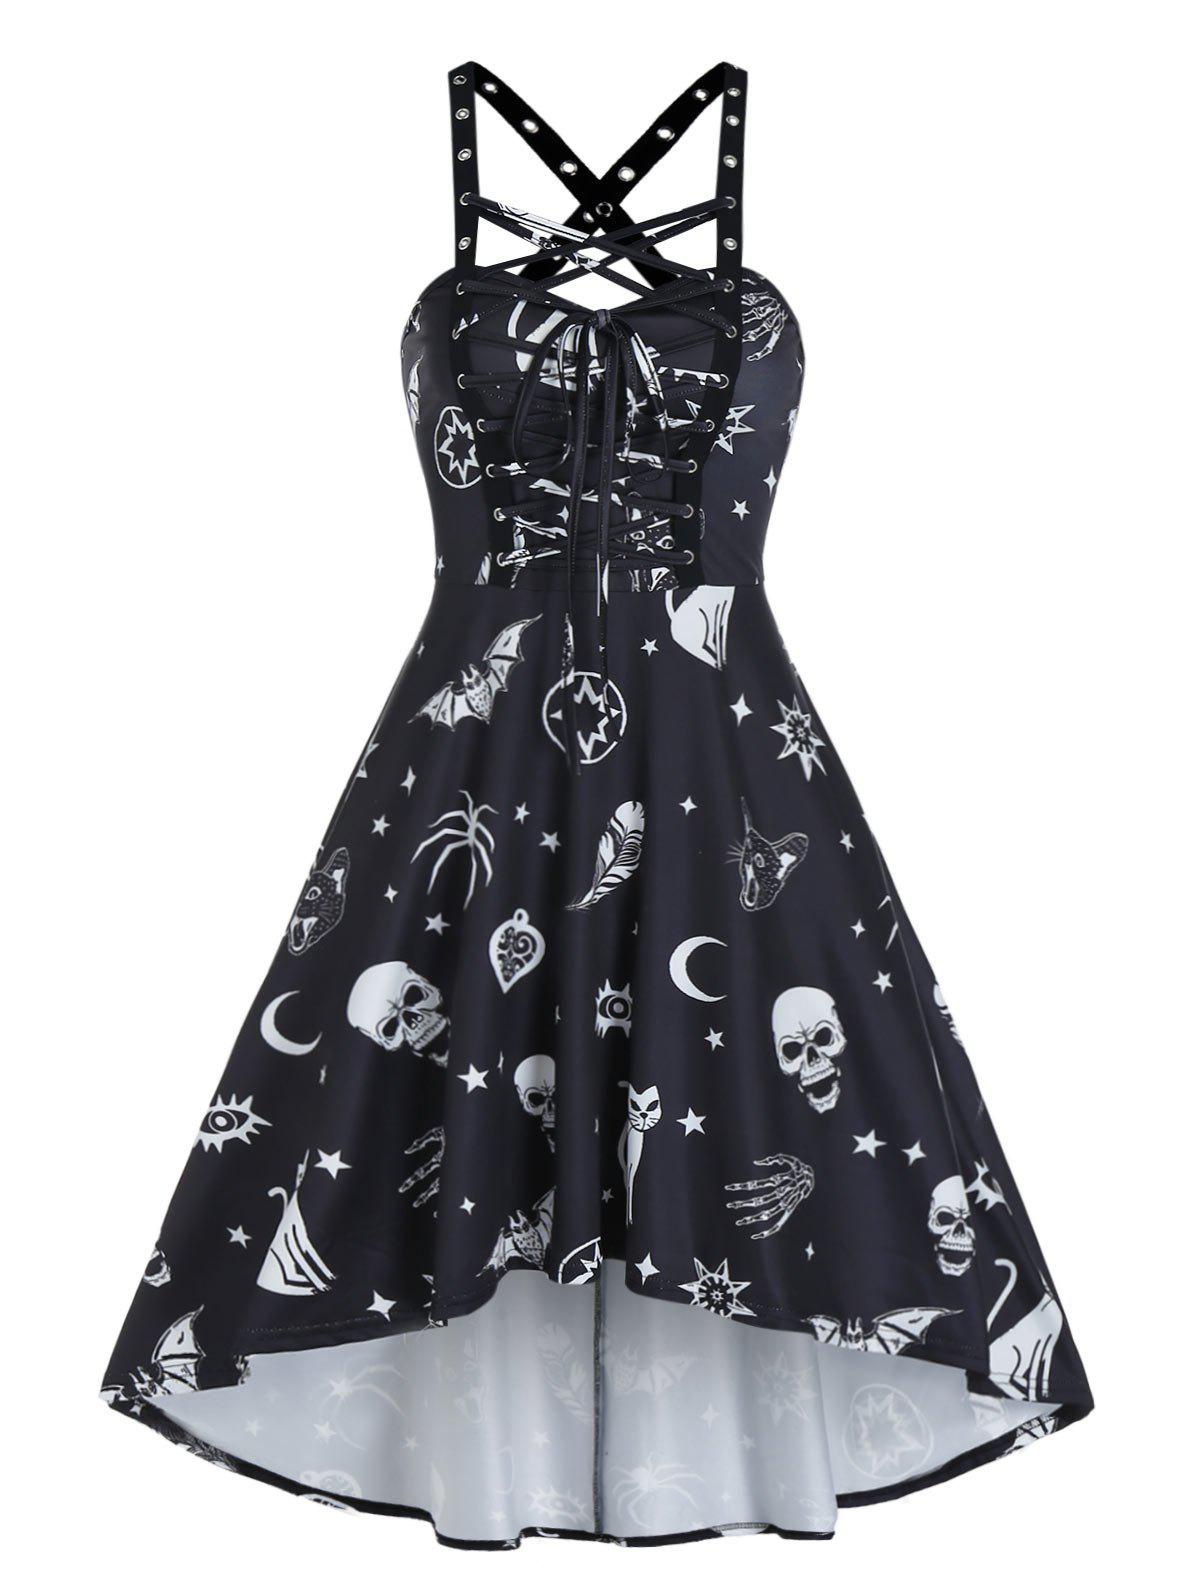 Affordable Skull Animal Print Lace Up Cami High Low Dress